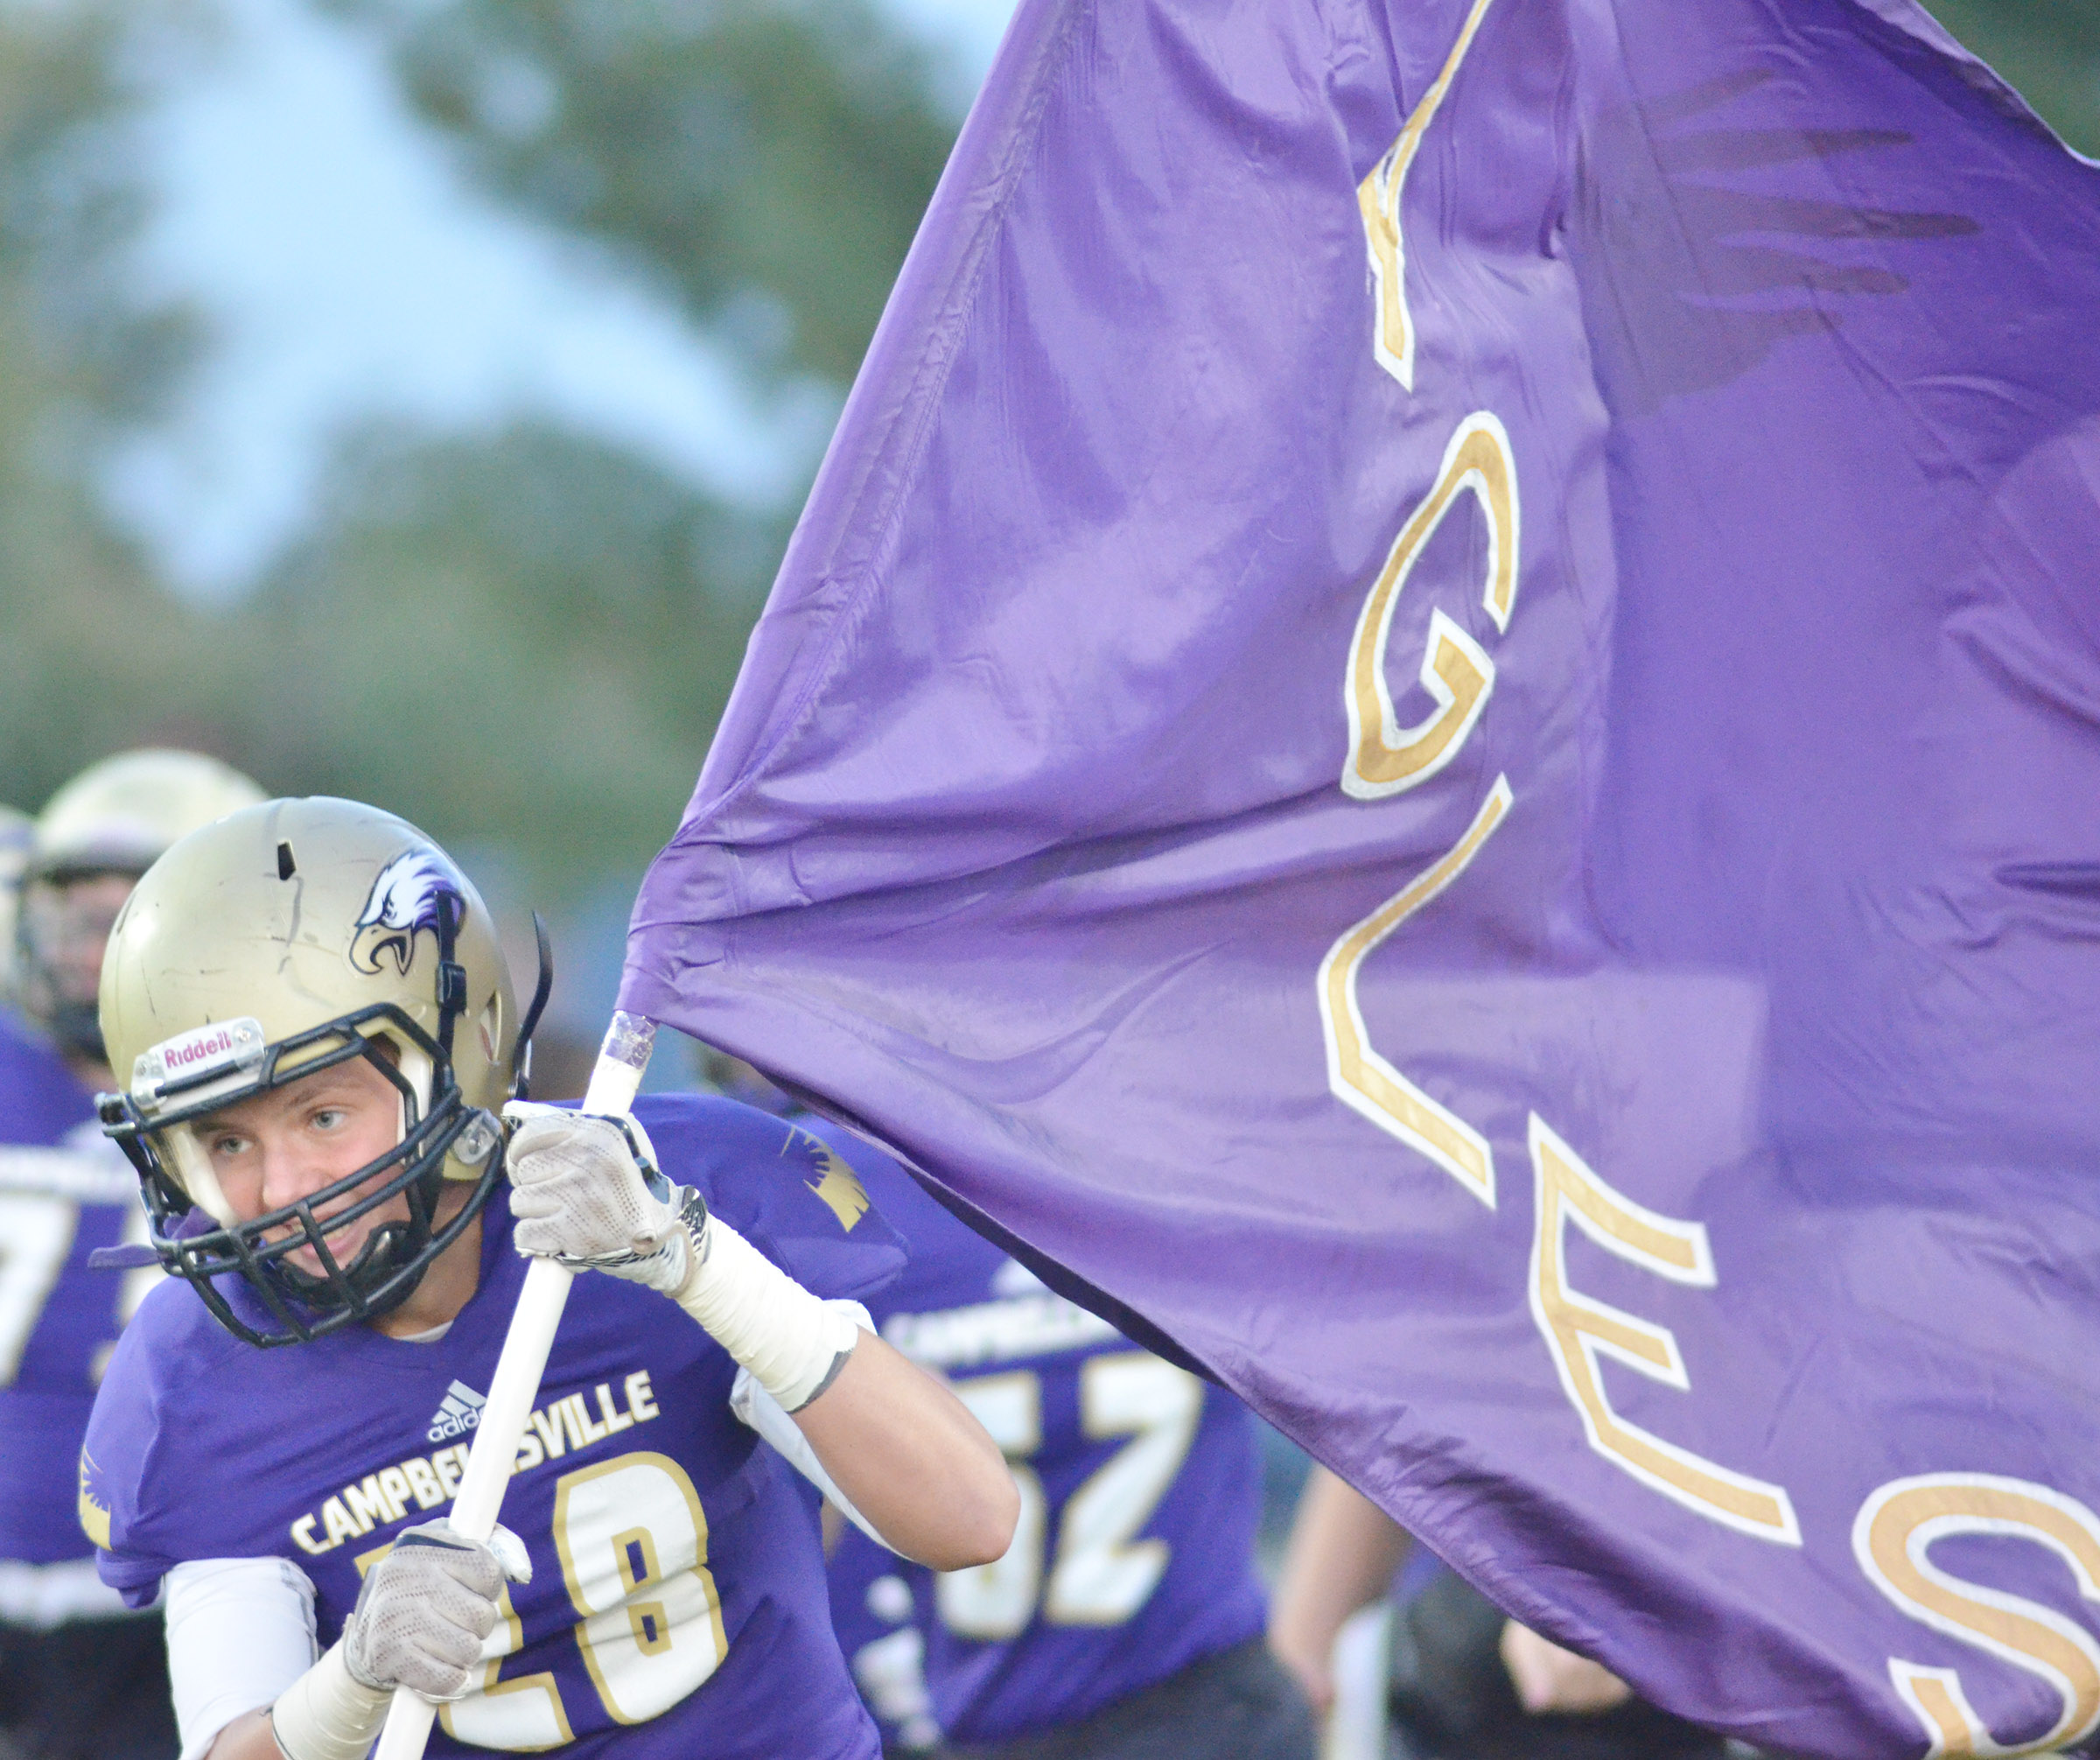 CHS sophomore Blake Allen carries the Eagles flag onto the field.